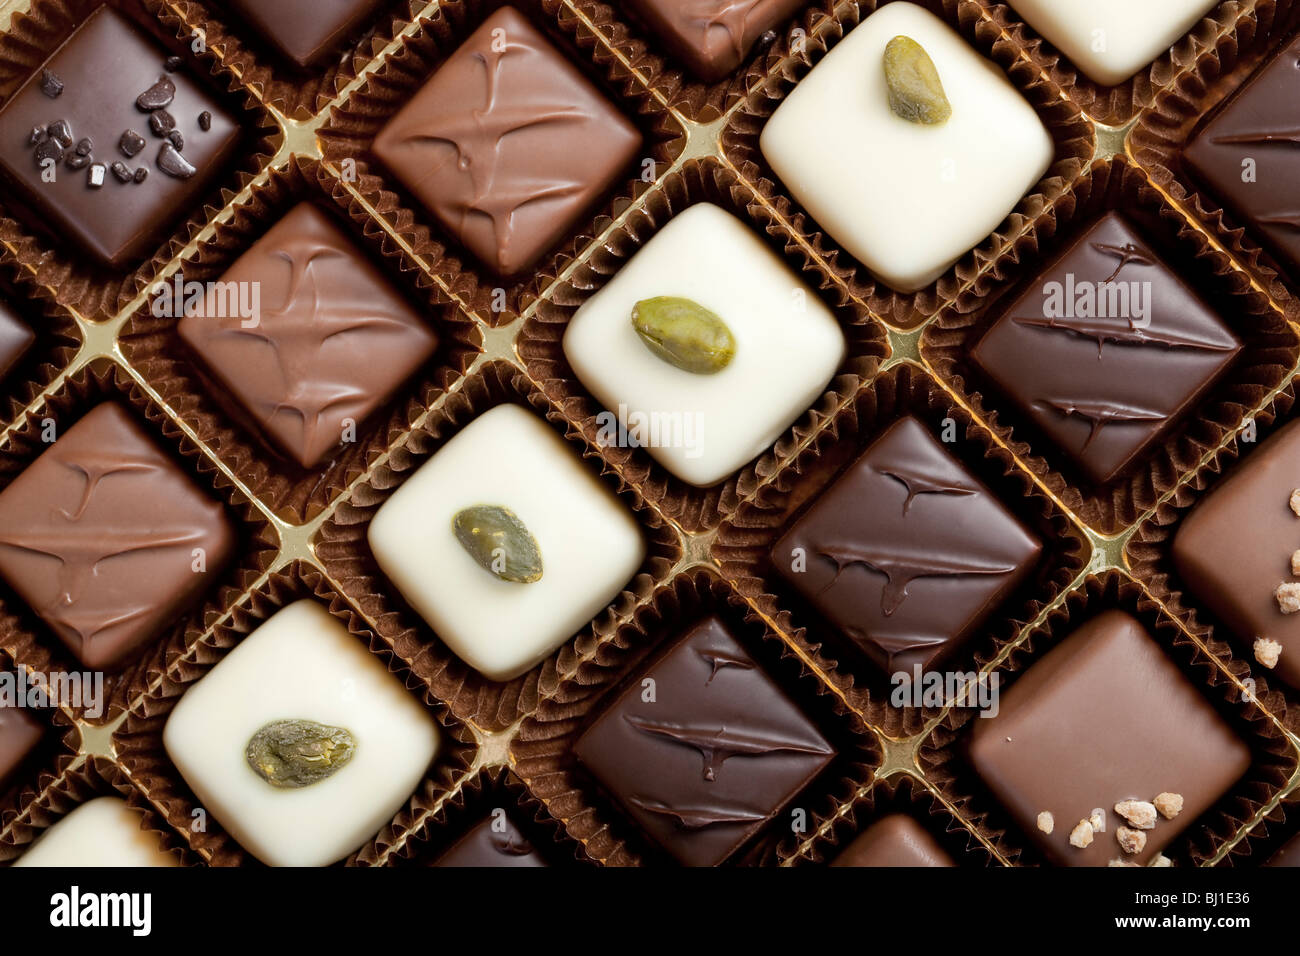 Handmade luxury chocolate in a box - shot in studio - Stock Image